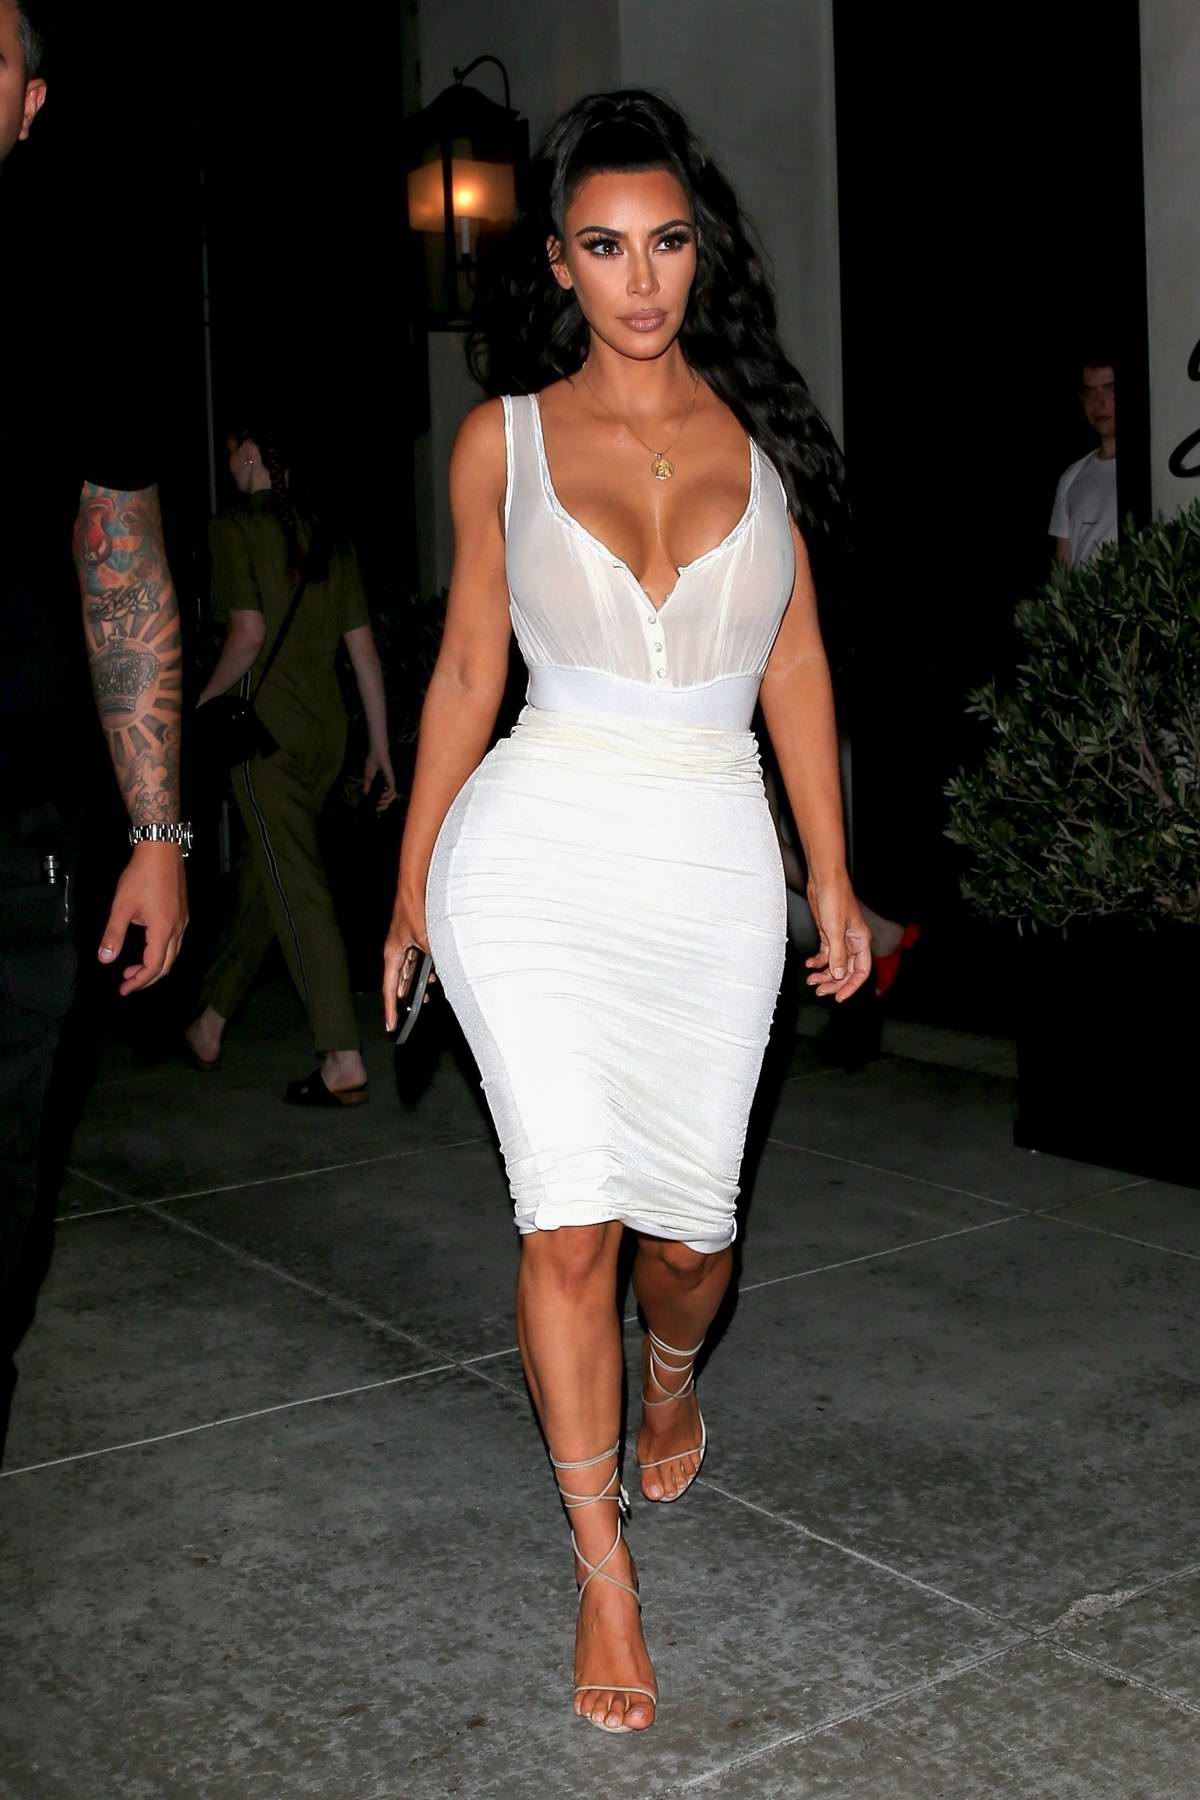 Kim Kardashian spotted in a white dress while leaving after dinner at Spago's in Los Angeles